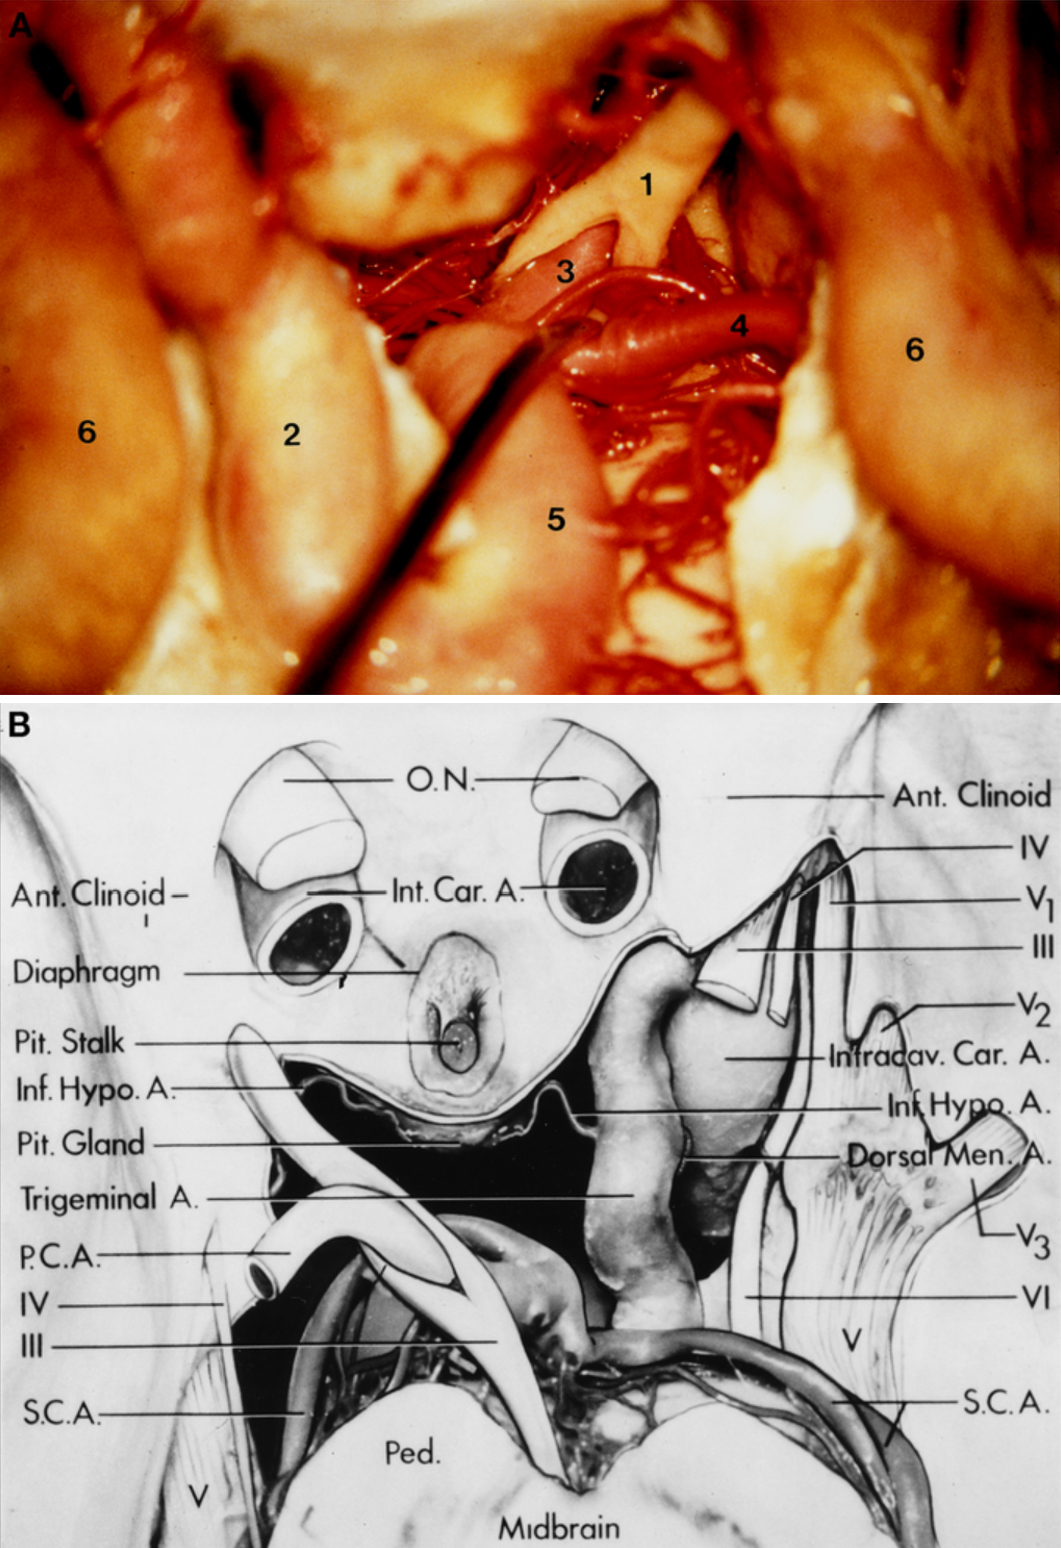 Figure 2 (A–B). A, photograph (inferior view) showing the fenestrated left-sided oculomotor nerve encircling the left posterior cerebral artery. 1, oculomotor nerve;2, PTA;3, posterior cerebral artery;4, left superior cerebellar artery; 5, basilar artery; 6, intracavernous carotid artery. B, illustration (superior view) showing the sellar and parasellar region. The dura mater has been removed from the superior, lateral, and posterior walls of the cavernous sinus, exposing the intracavernous carotid artery (Intracav. Car. A.) and the PTA (Trigeminal A.). The left-sided oculomotor nerve (III) is fenestrated around the left posterior cerebral artery (P.C.A.) just after it has emerged from the midbrain. A duplicated superior cerebellar artery (S.C.A.) is seen in the right side. There is also no direct relationship between the PTA and the abducens nerve (VI). O.N., oculomotor nerve; Ant. clinoid, anterior clinoid process; Int. Car. A., internal carotid artery; Pit. Stalk, pituitary stalk; Inf. Hypo A., inferior hypophyseal artery; Pit. Gland, pituitary gland; Dorsal Men. A., dorsal meningeal artery; Ped., peduncle;V1, first ophthalmic branch of the trigeminal nerve;V2, maxillary branch of the trigeminal nerve;V3, mandibular branch of the trigeminal nerve; IV, IVth cranial nerve; V, Vth cranial nerve. (Images courtesy of AL Rhoton, Jr.)